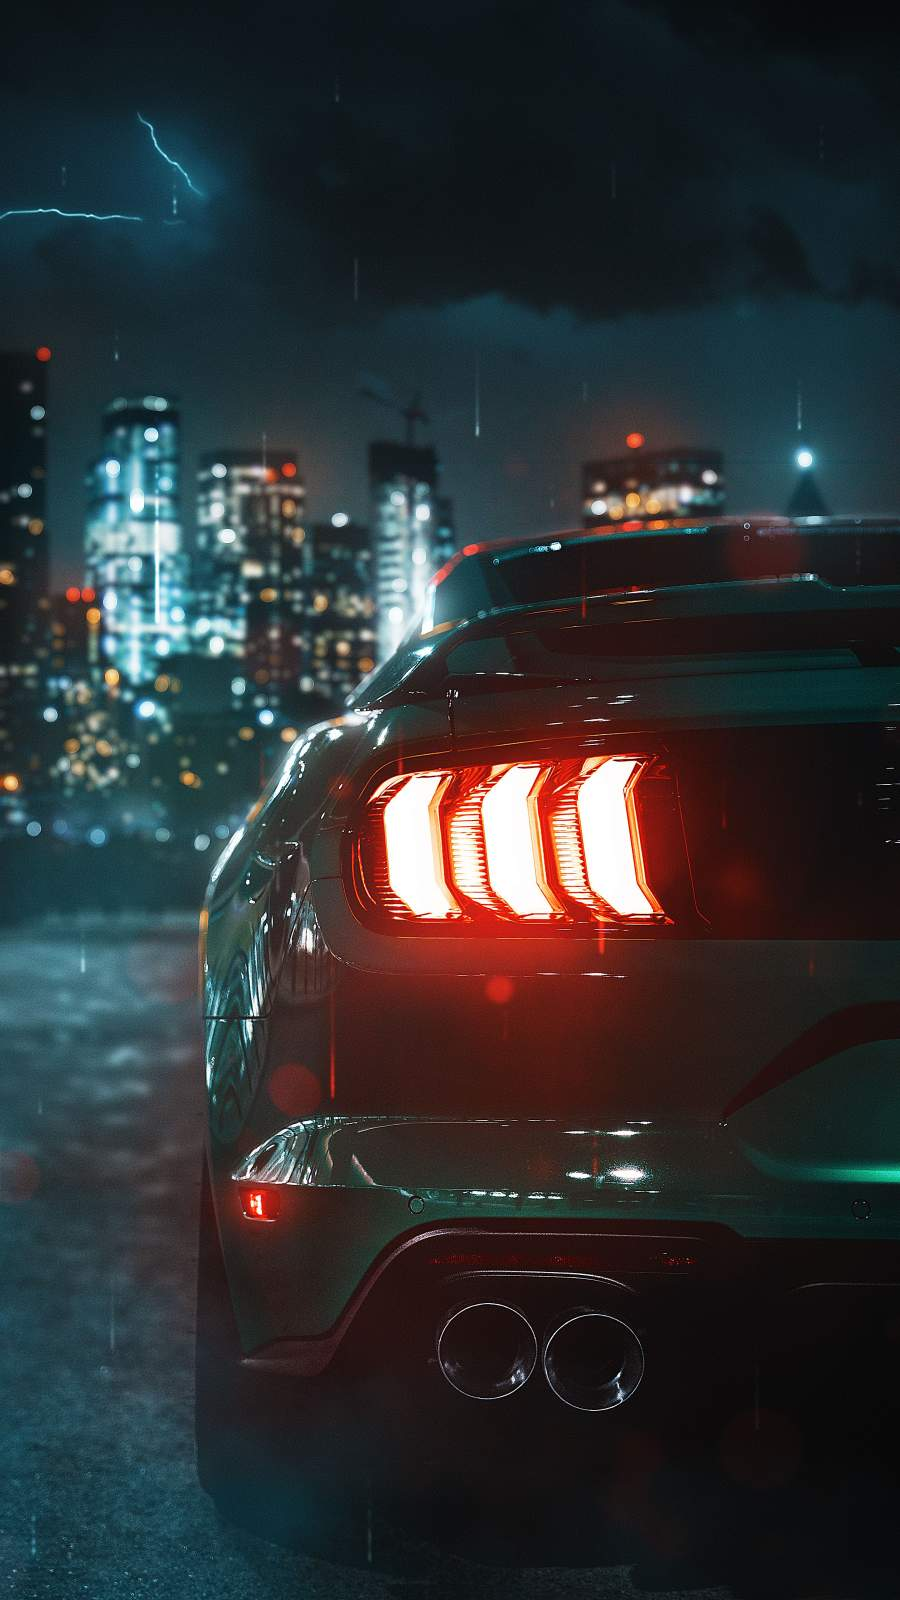 Mustang Tail Lights iPhone Wallpaper